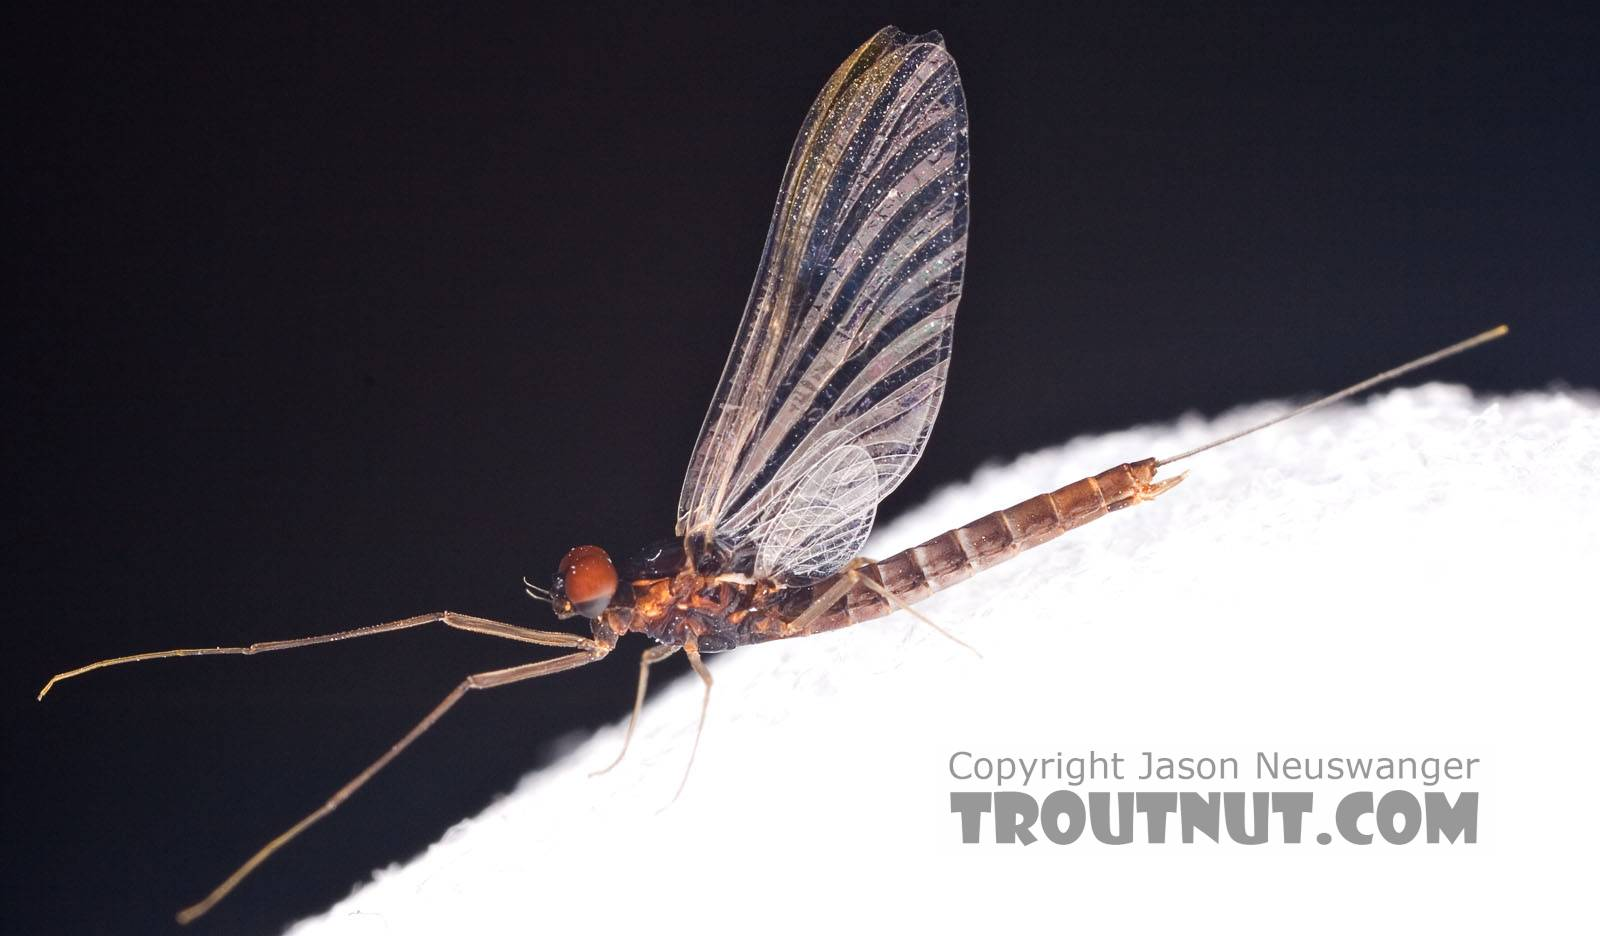 Male Neoleptophlebia adoptiva (Blue Quill) Mayfly Spinner from Factory Brook in New York